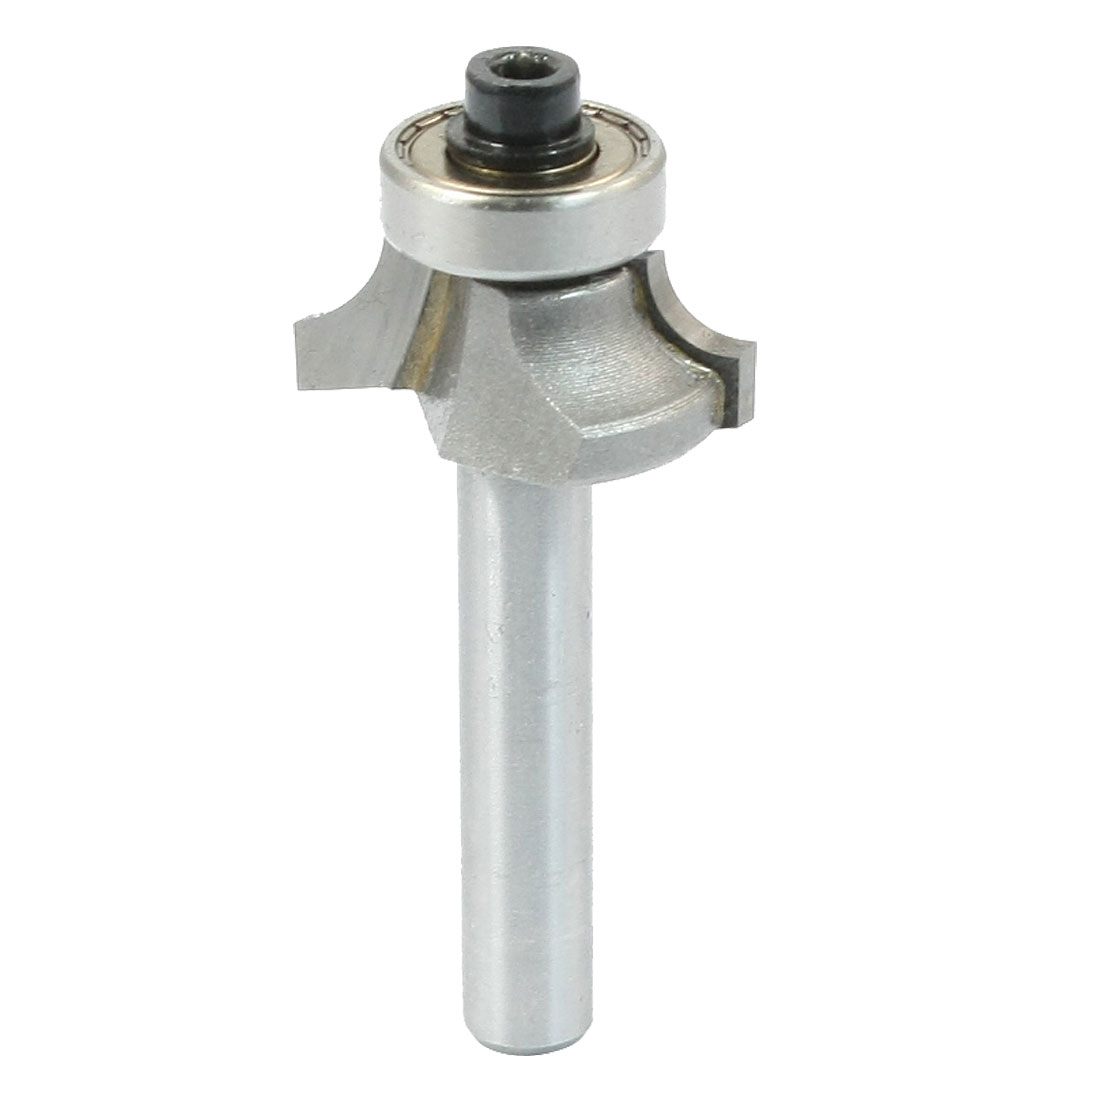 "Silver Tone Corner Rounding Round Over Router Bit 1/4"" x 5/16"""